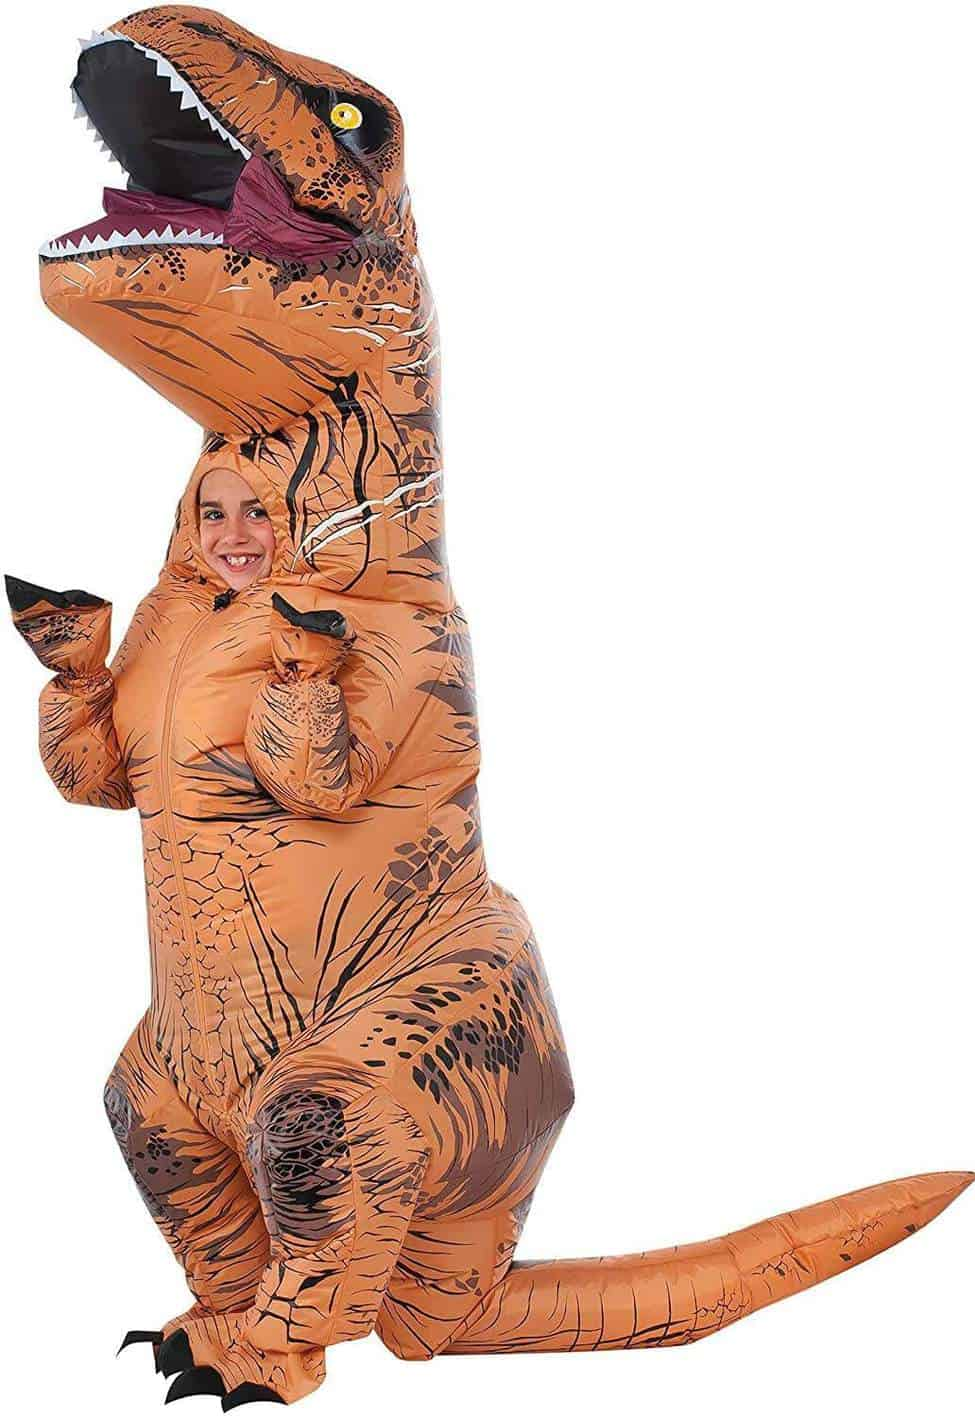 https://www.amazon.com/s?k=dinosaur+costume&_encoding=UTF8&camp=1789&creative=9325&linkCode=ur2&linkId=cc4afff19f7cb161a040a8196e34984c&tag=bikesreview0f-20&ref=nb_sb_noss